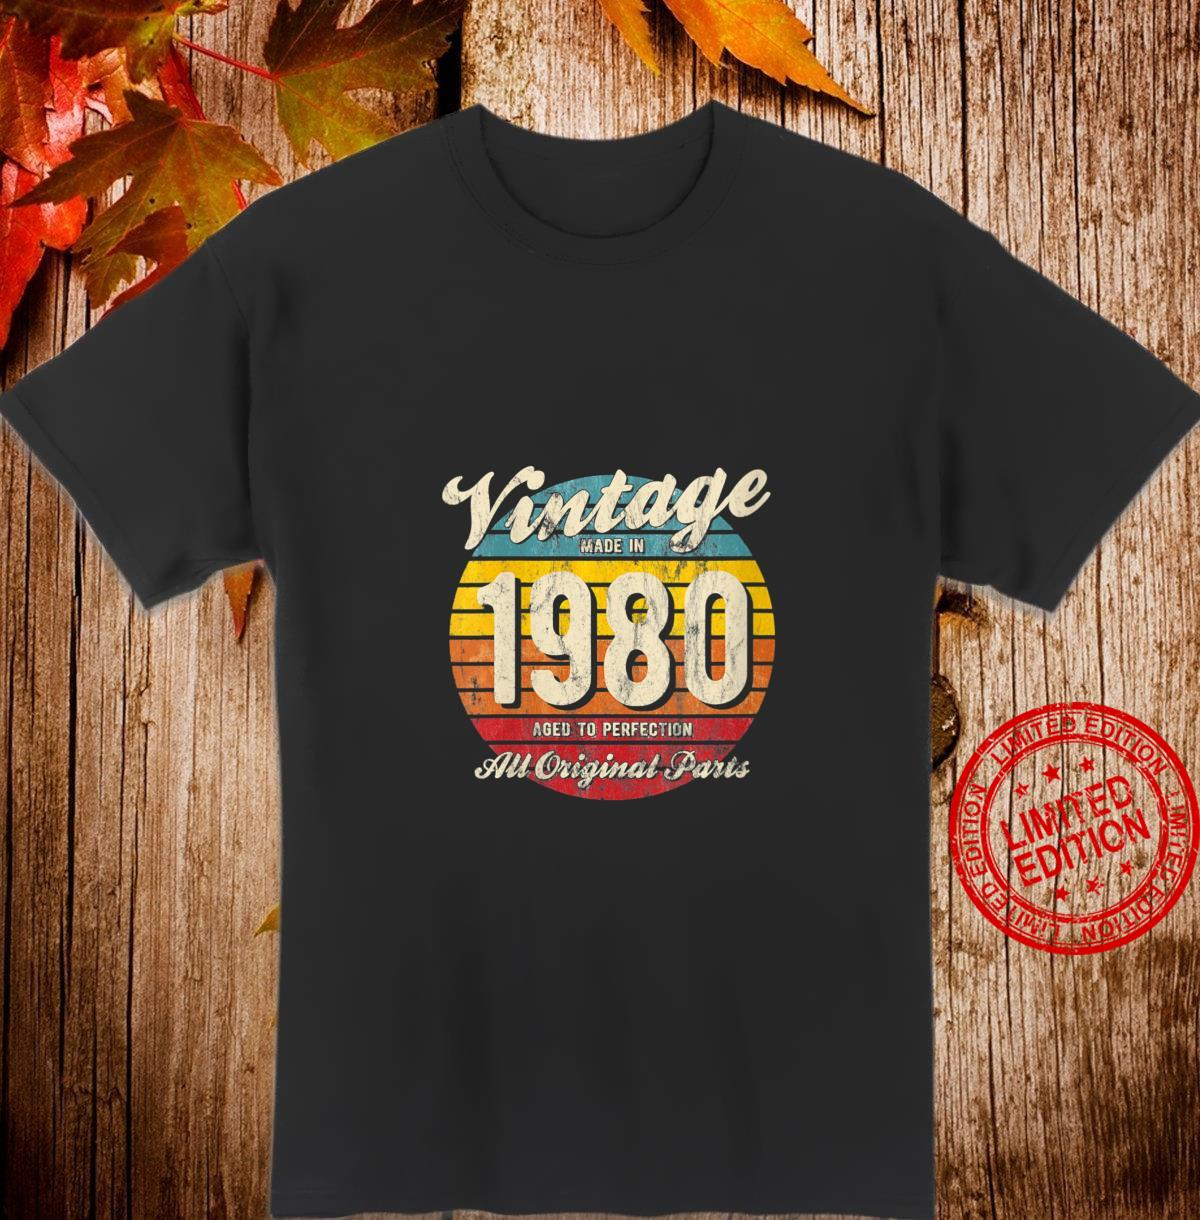 Womens Vintage Sunset 40th Birthday Made In 1980 Aged Perfection r8 Shirt